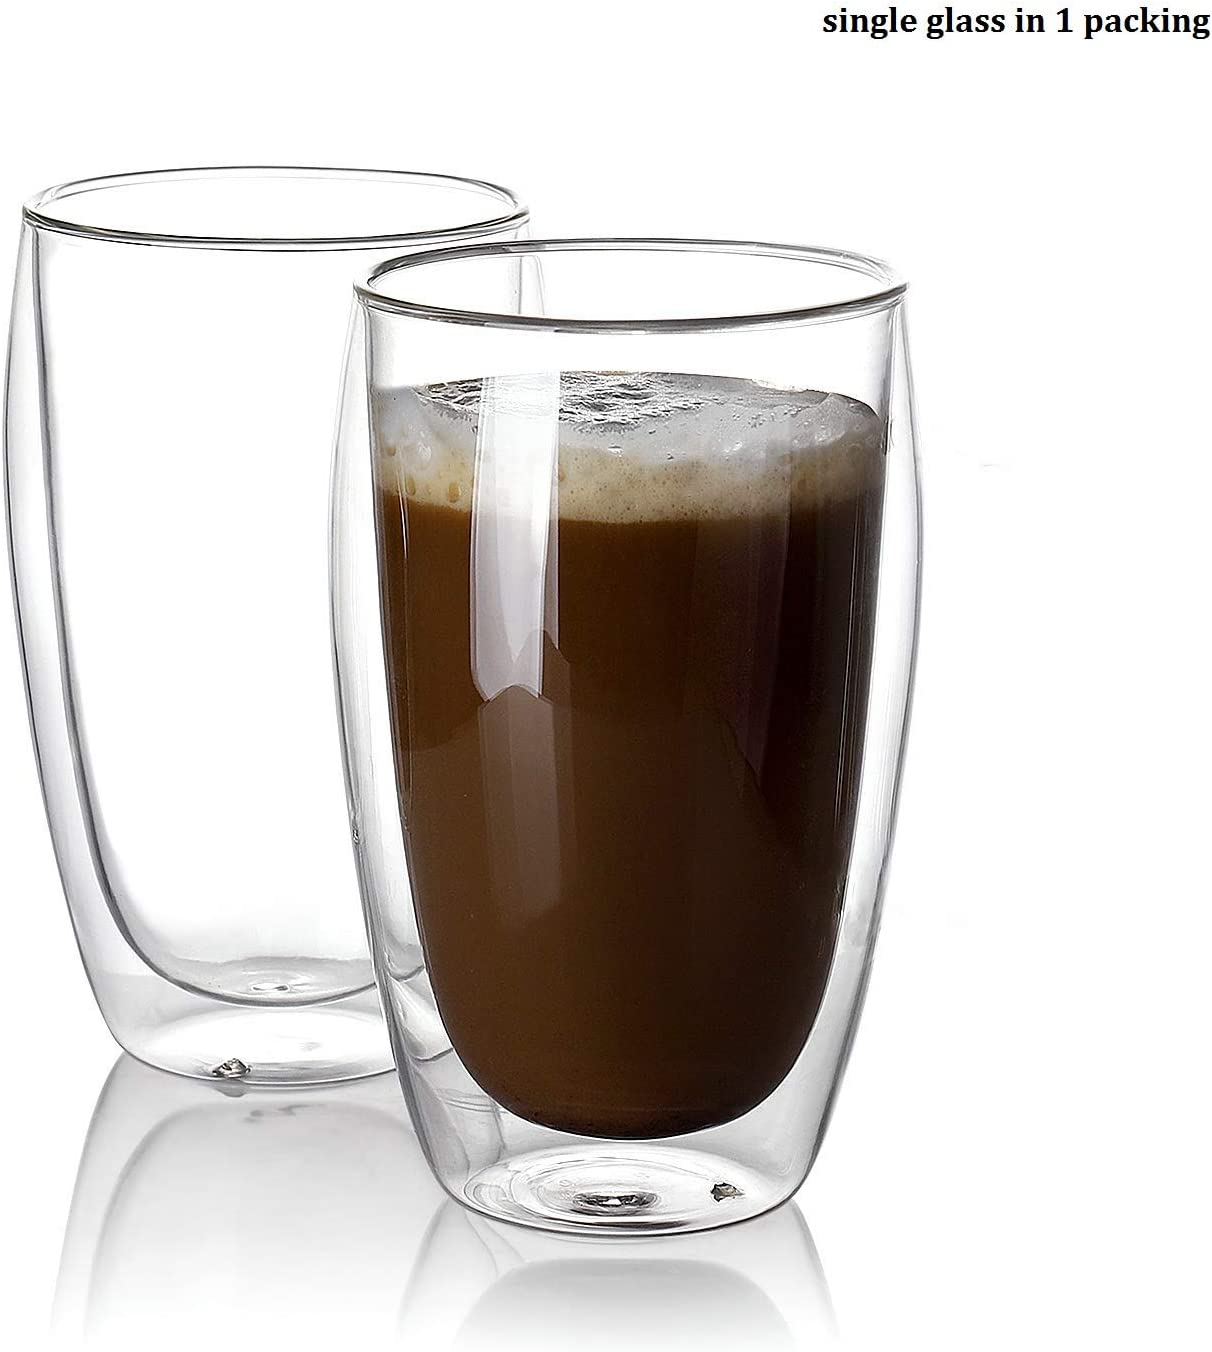 Borosilicate Walled Coffee/Tea/beverages Glasses Cup 15 oz - Double Wall Insulated Latte Glass Espresso Coffee Mugs 1 pc glass in 1 packing